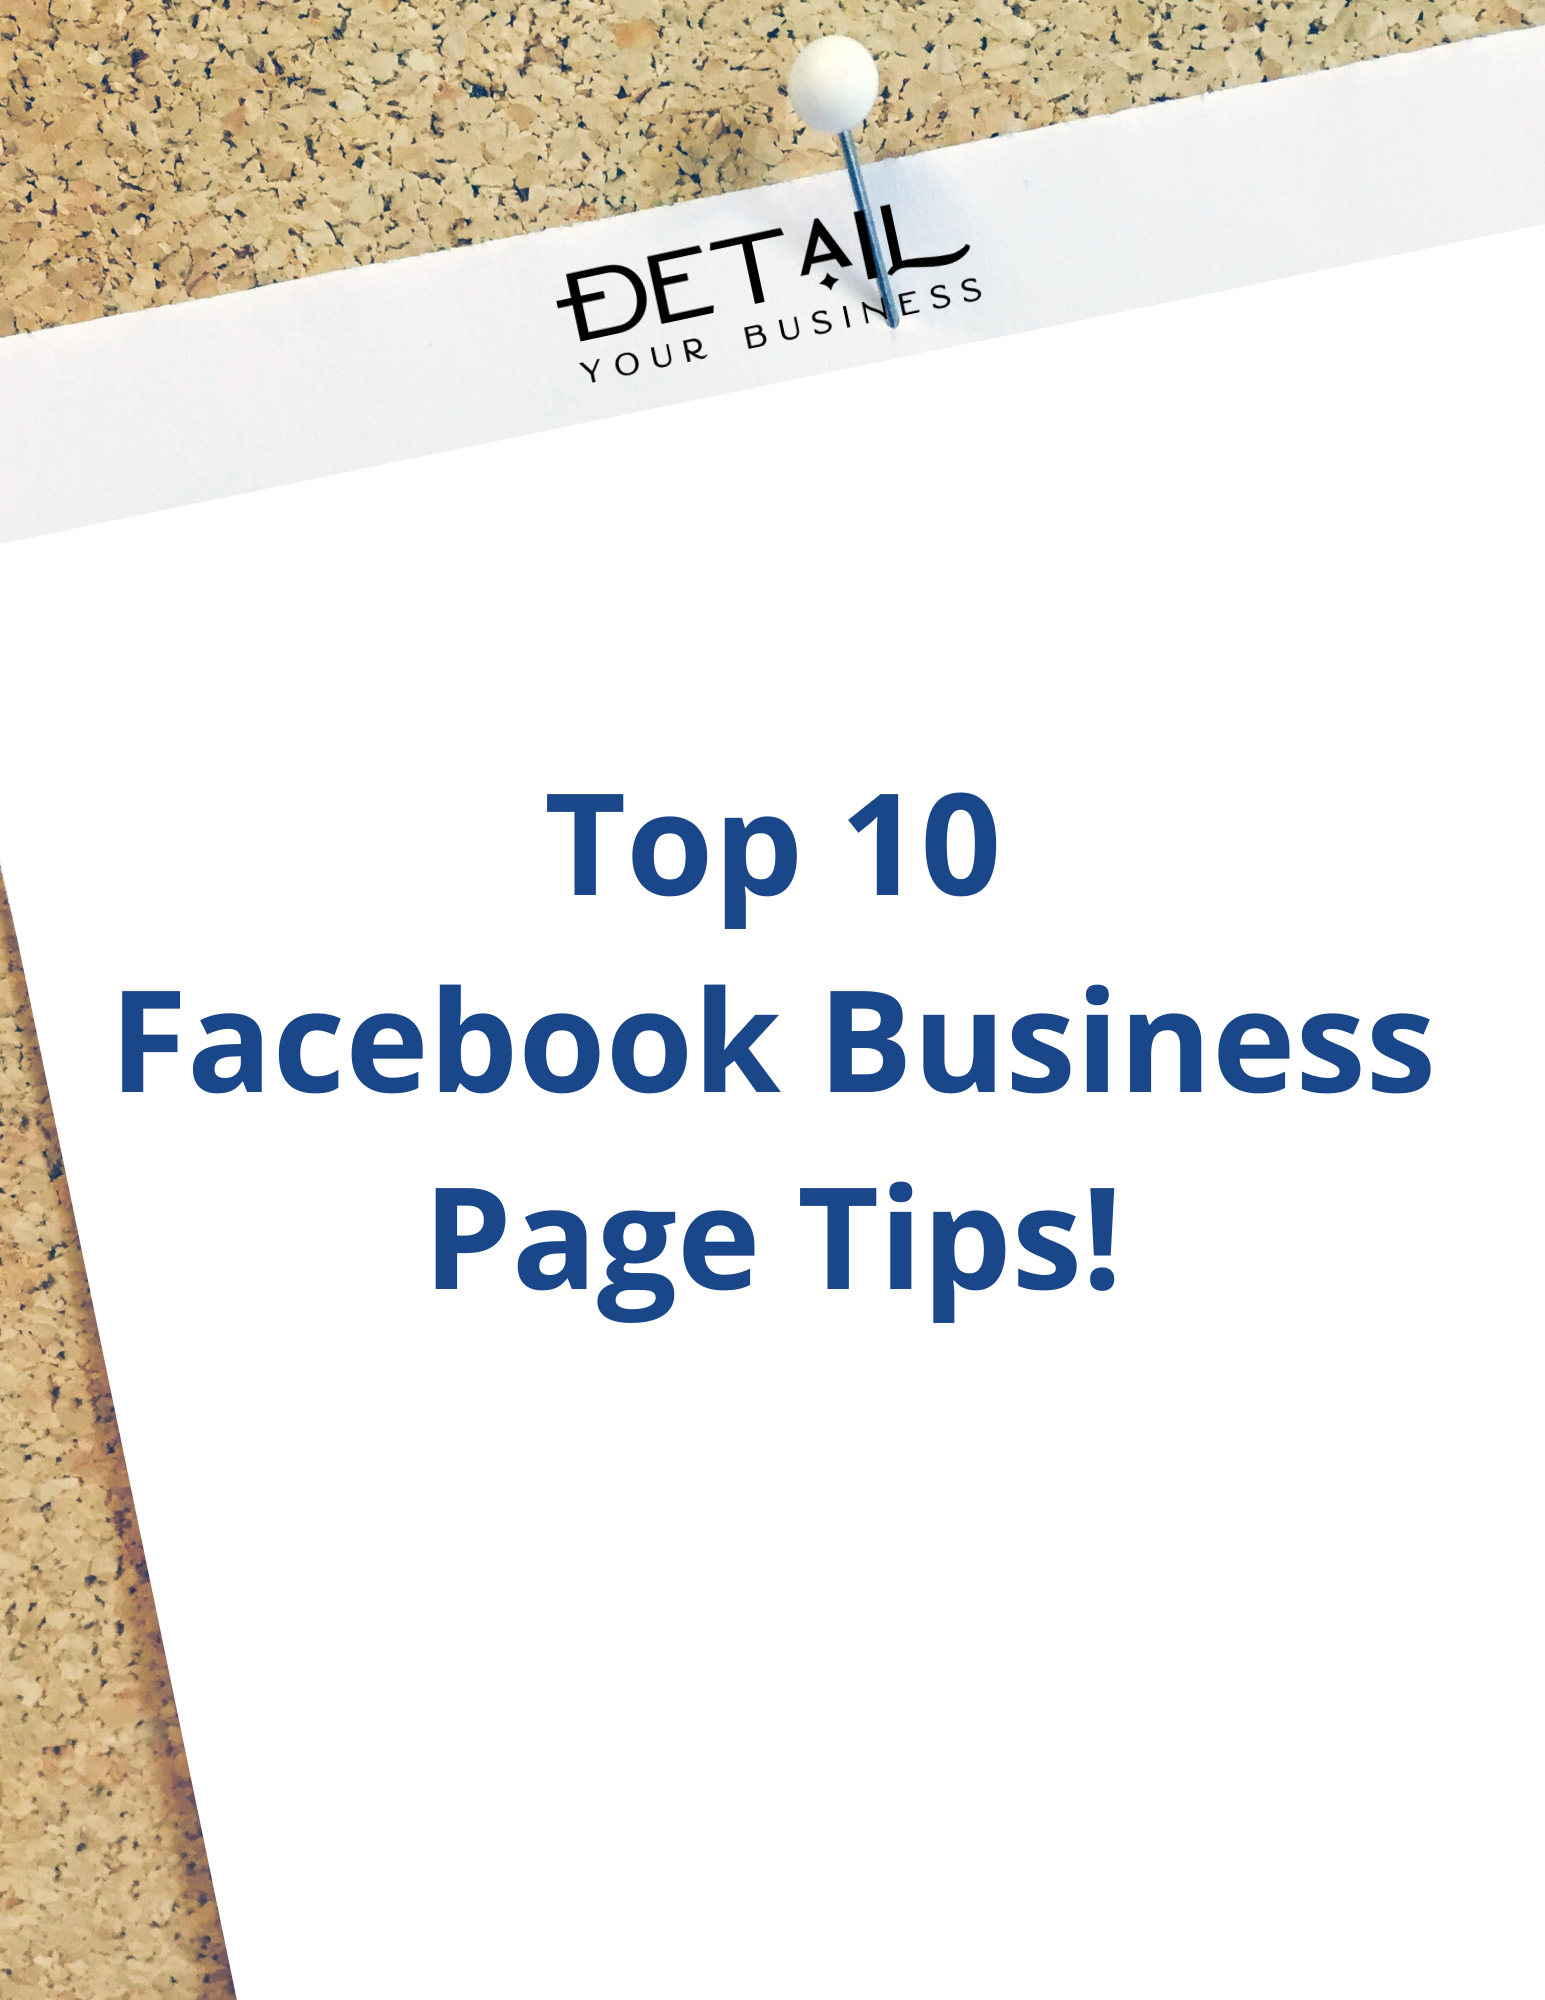 Top 10 Facebook Business Page Tips!.png